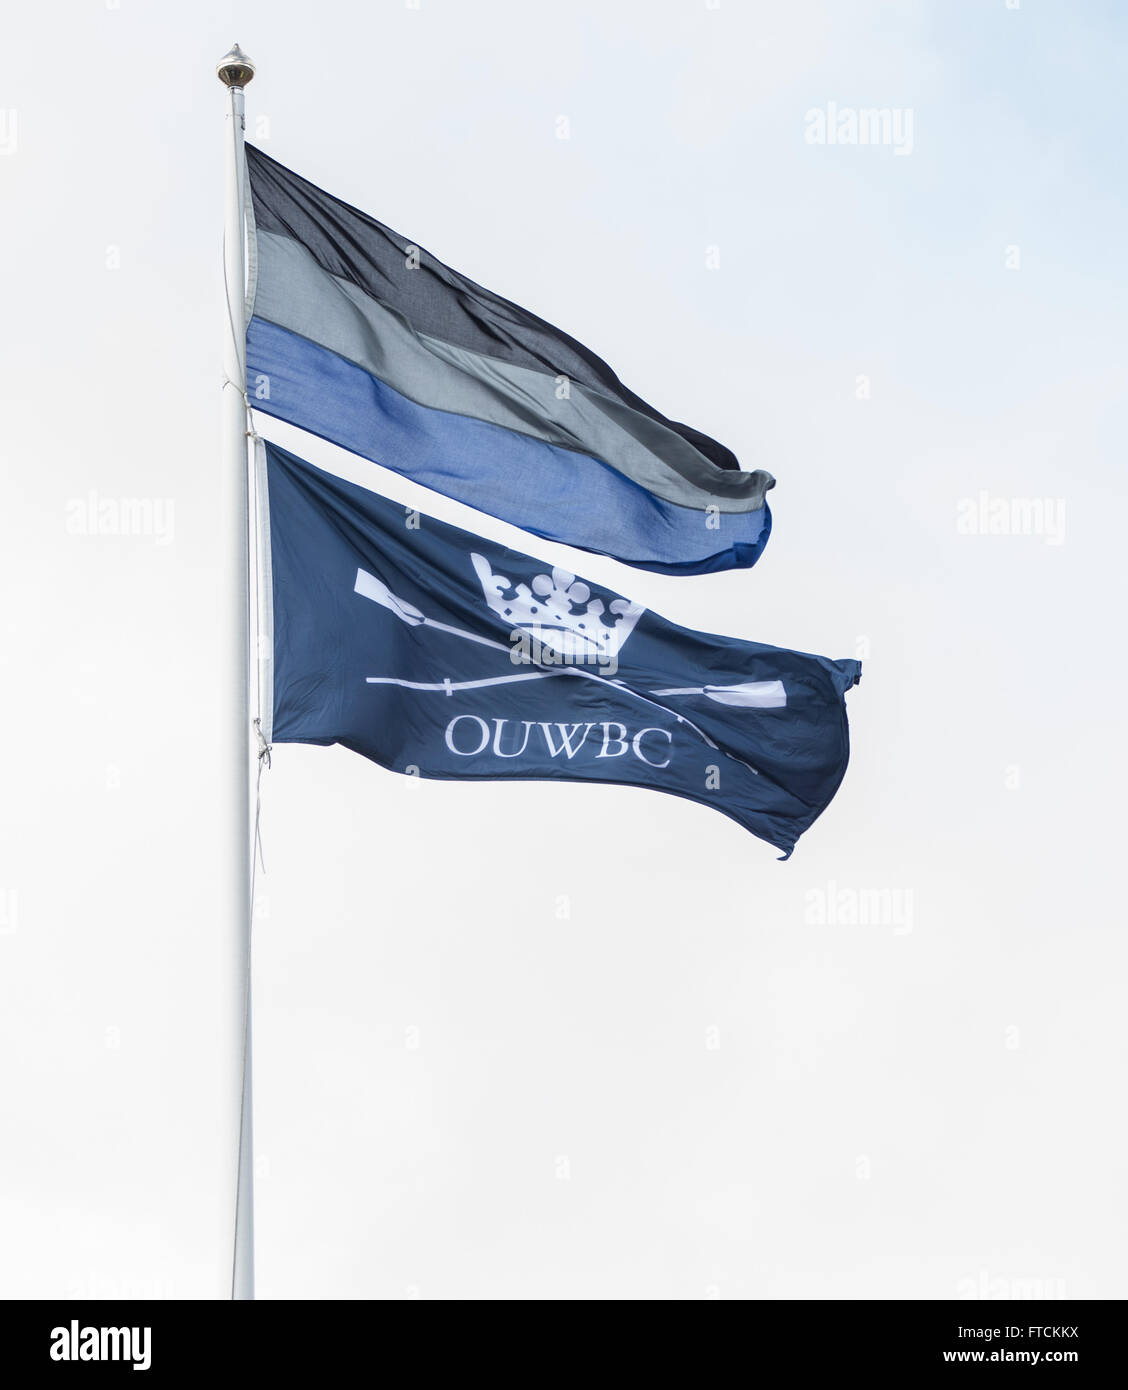 The Thames Tideway, London, UK. 27th Mar, 2016. The Cancer Research UK Boat Race. Oxford University Boat Club flag waving in the windy conditions Credit:  Action Plus Sports/Alamy Live News Stock Photo